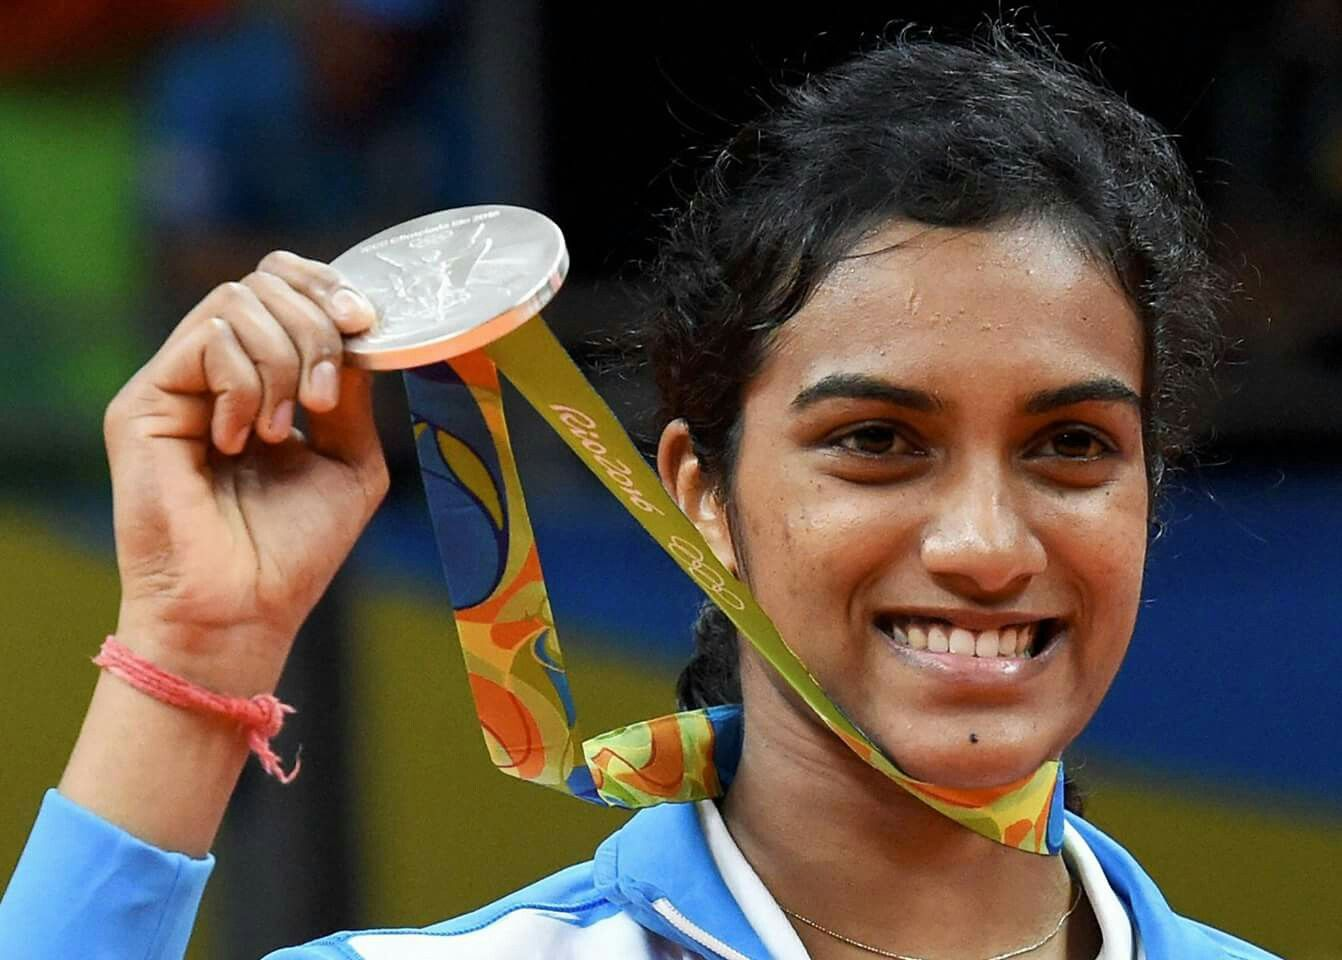 Rio2016 P V Sindhu poses with her silver medal at 2016 Summer